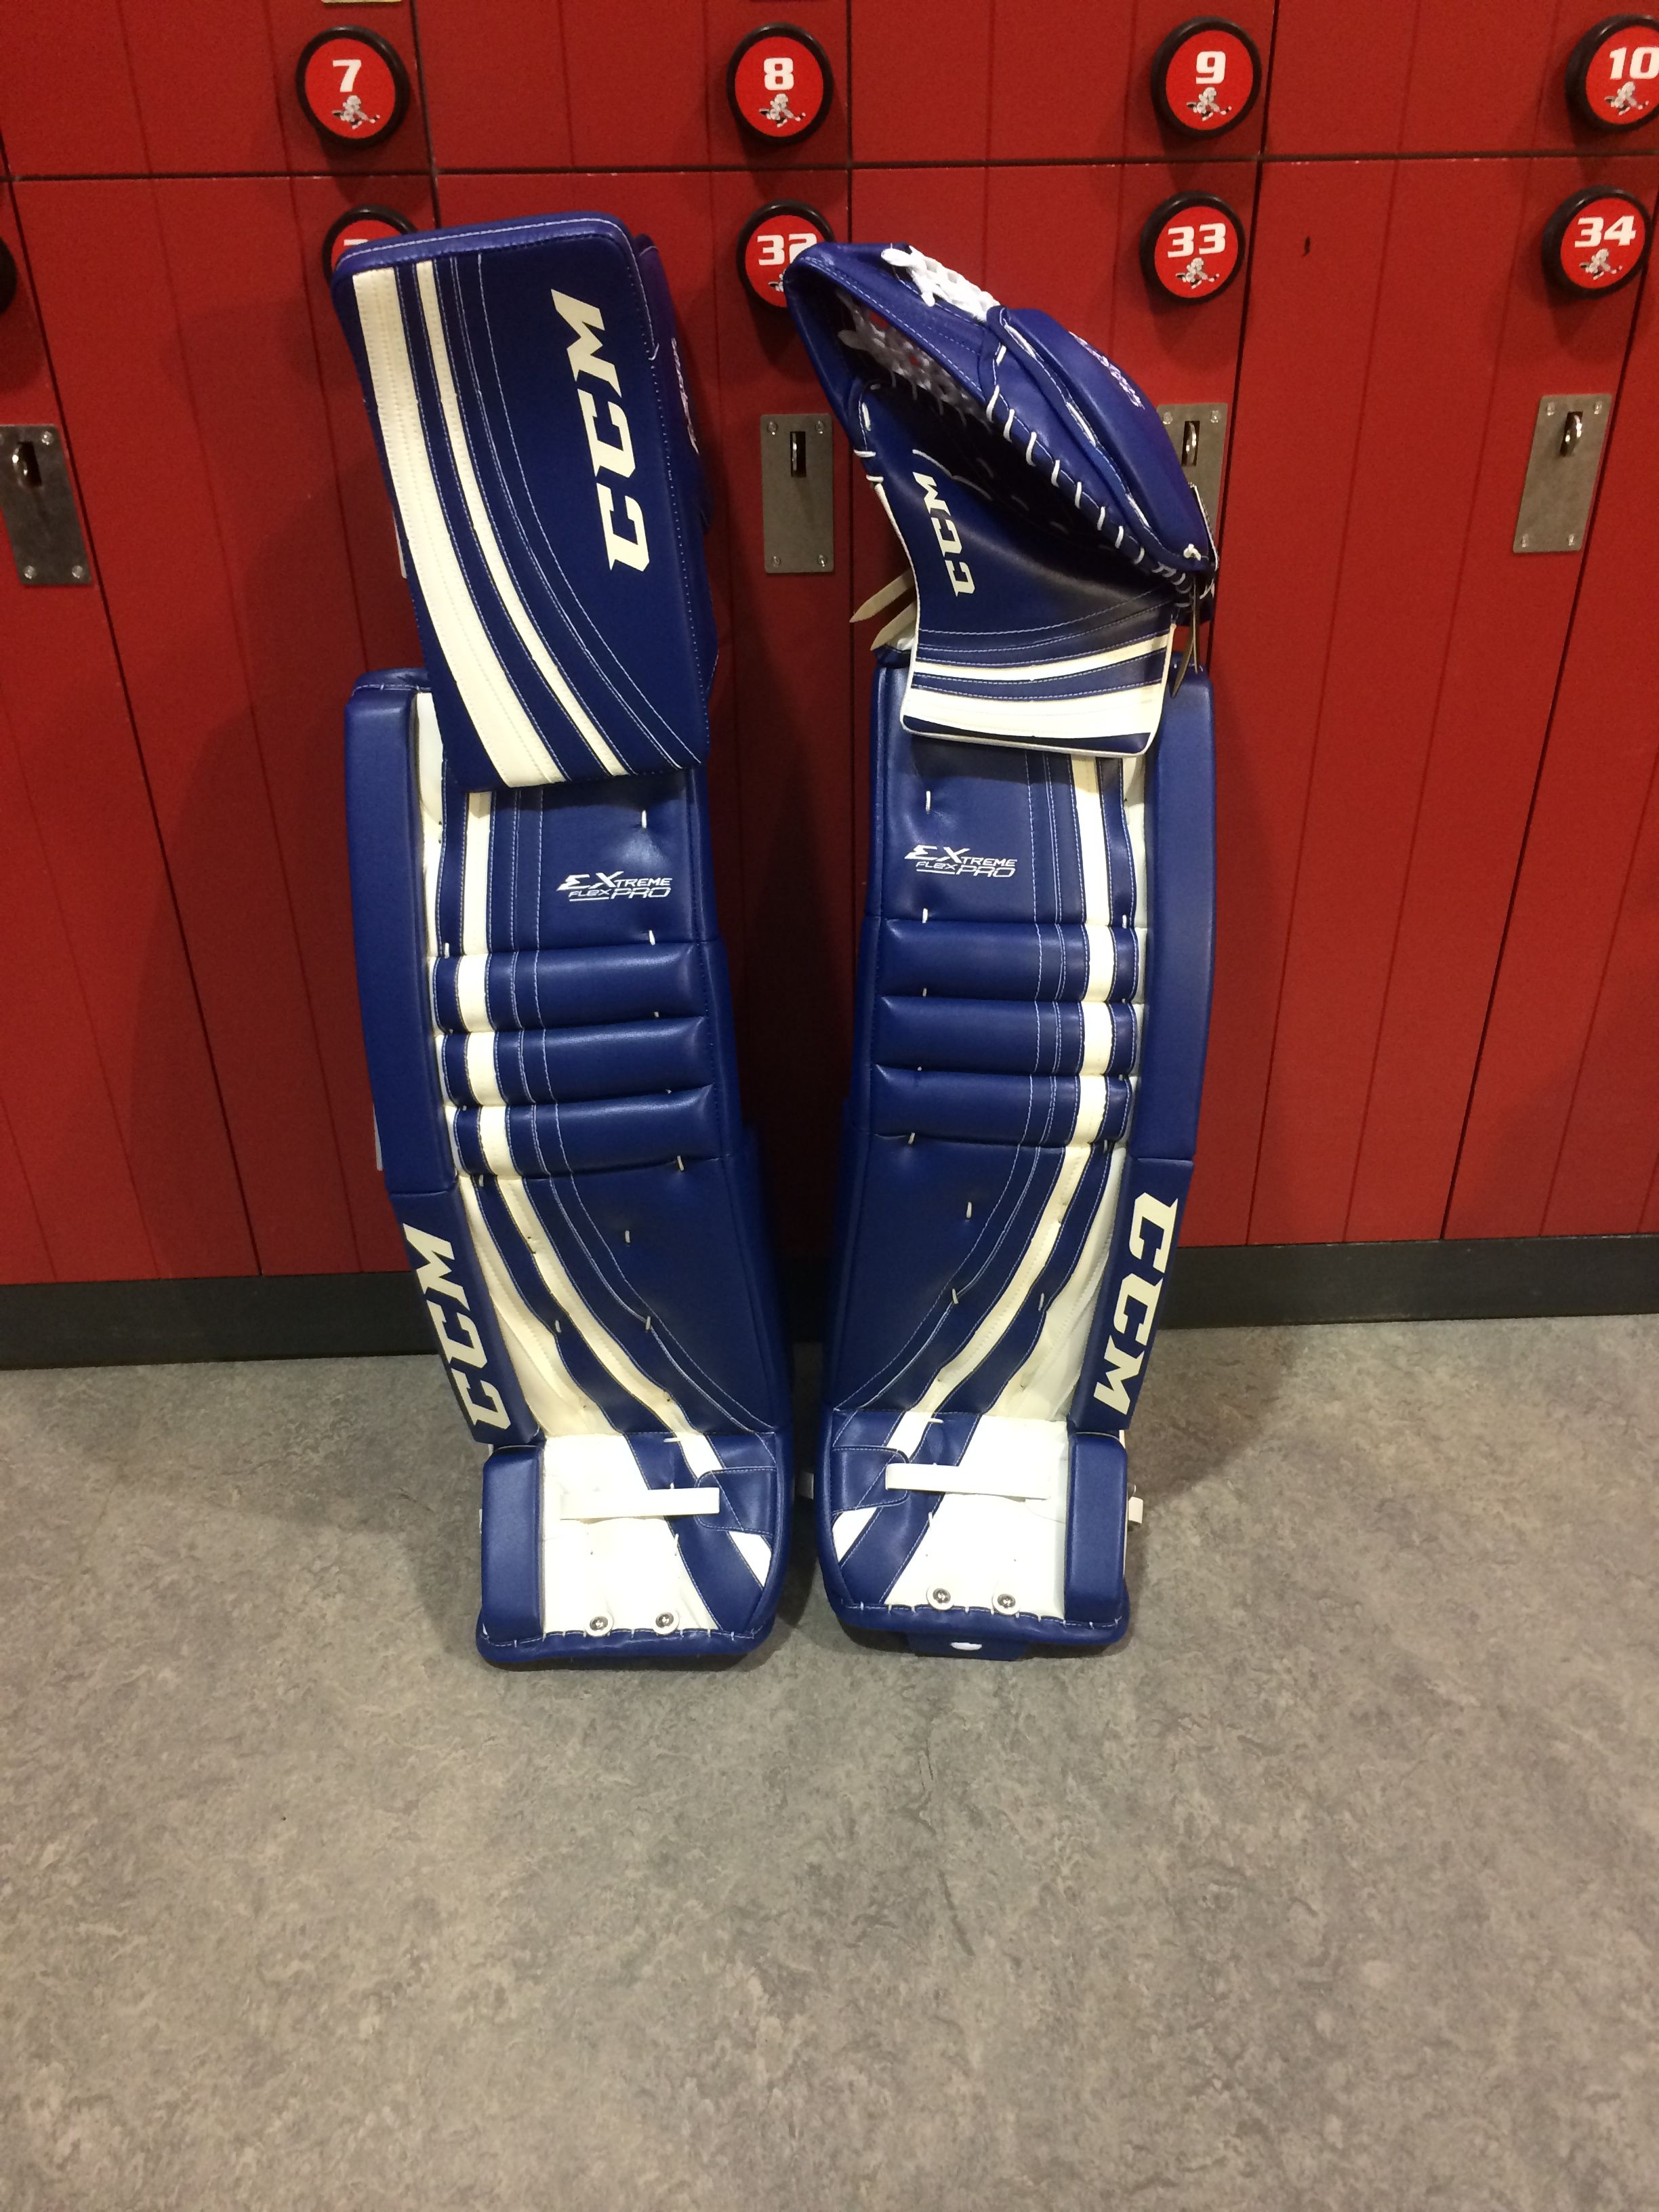 CCM Extreme Flex Pro custom goalie pads and gloves made for a